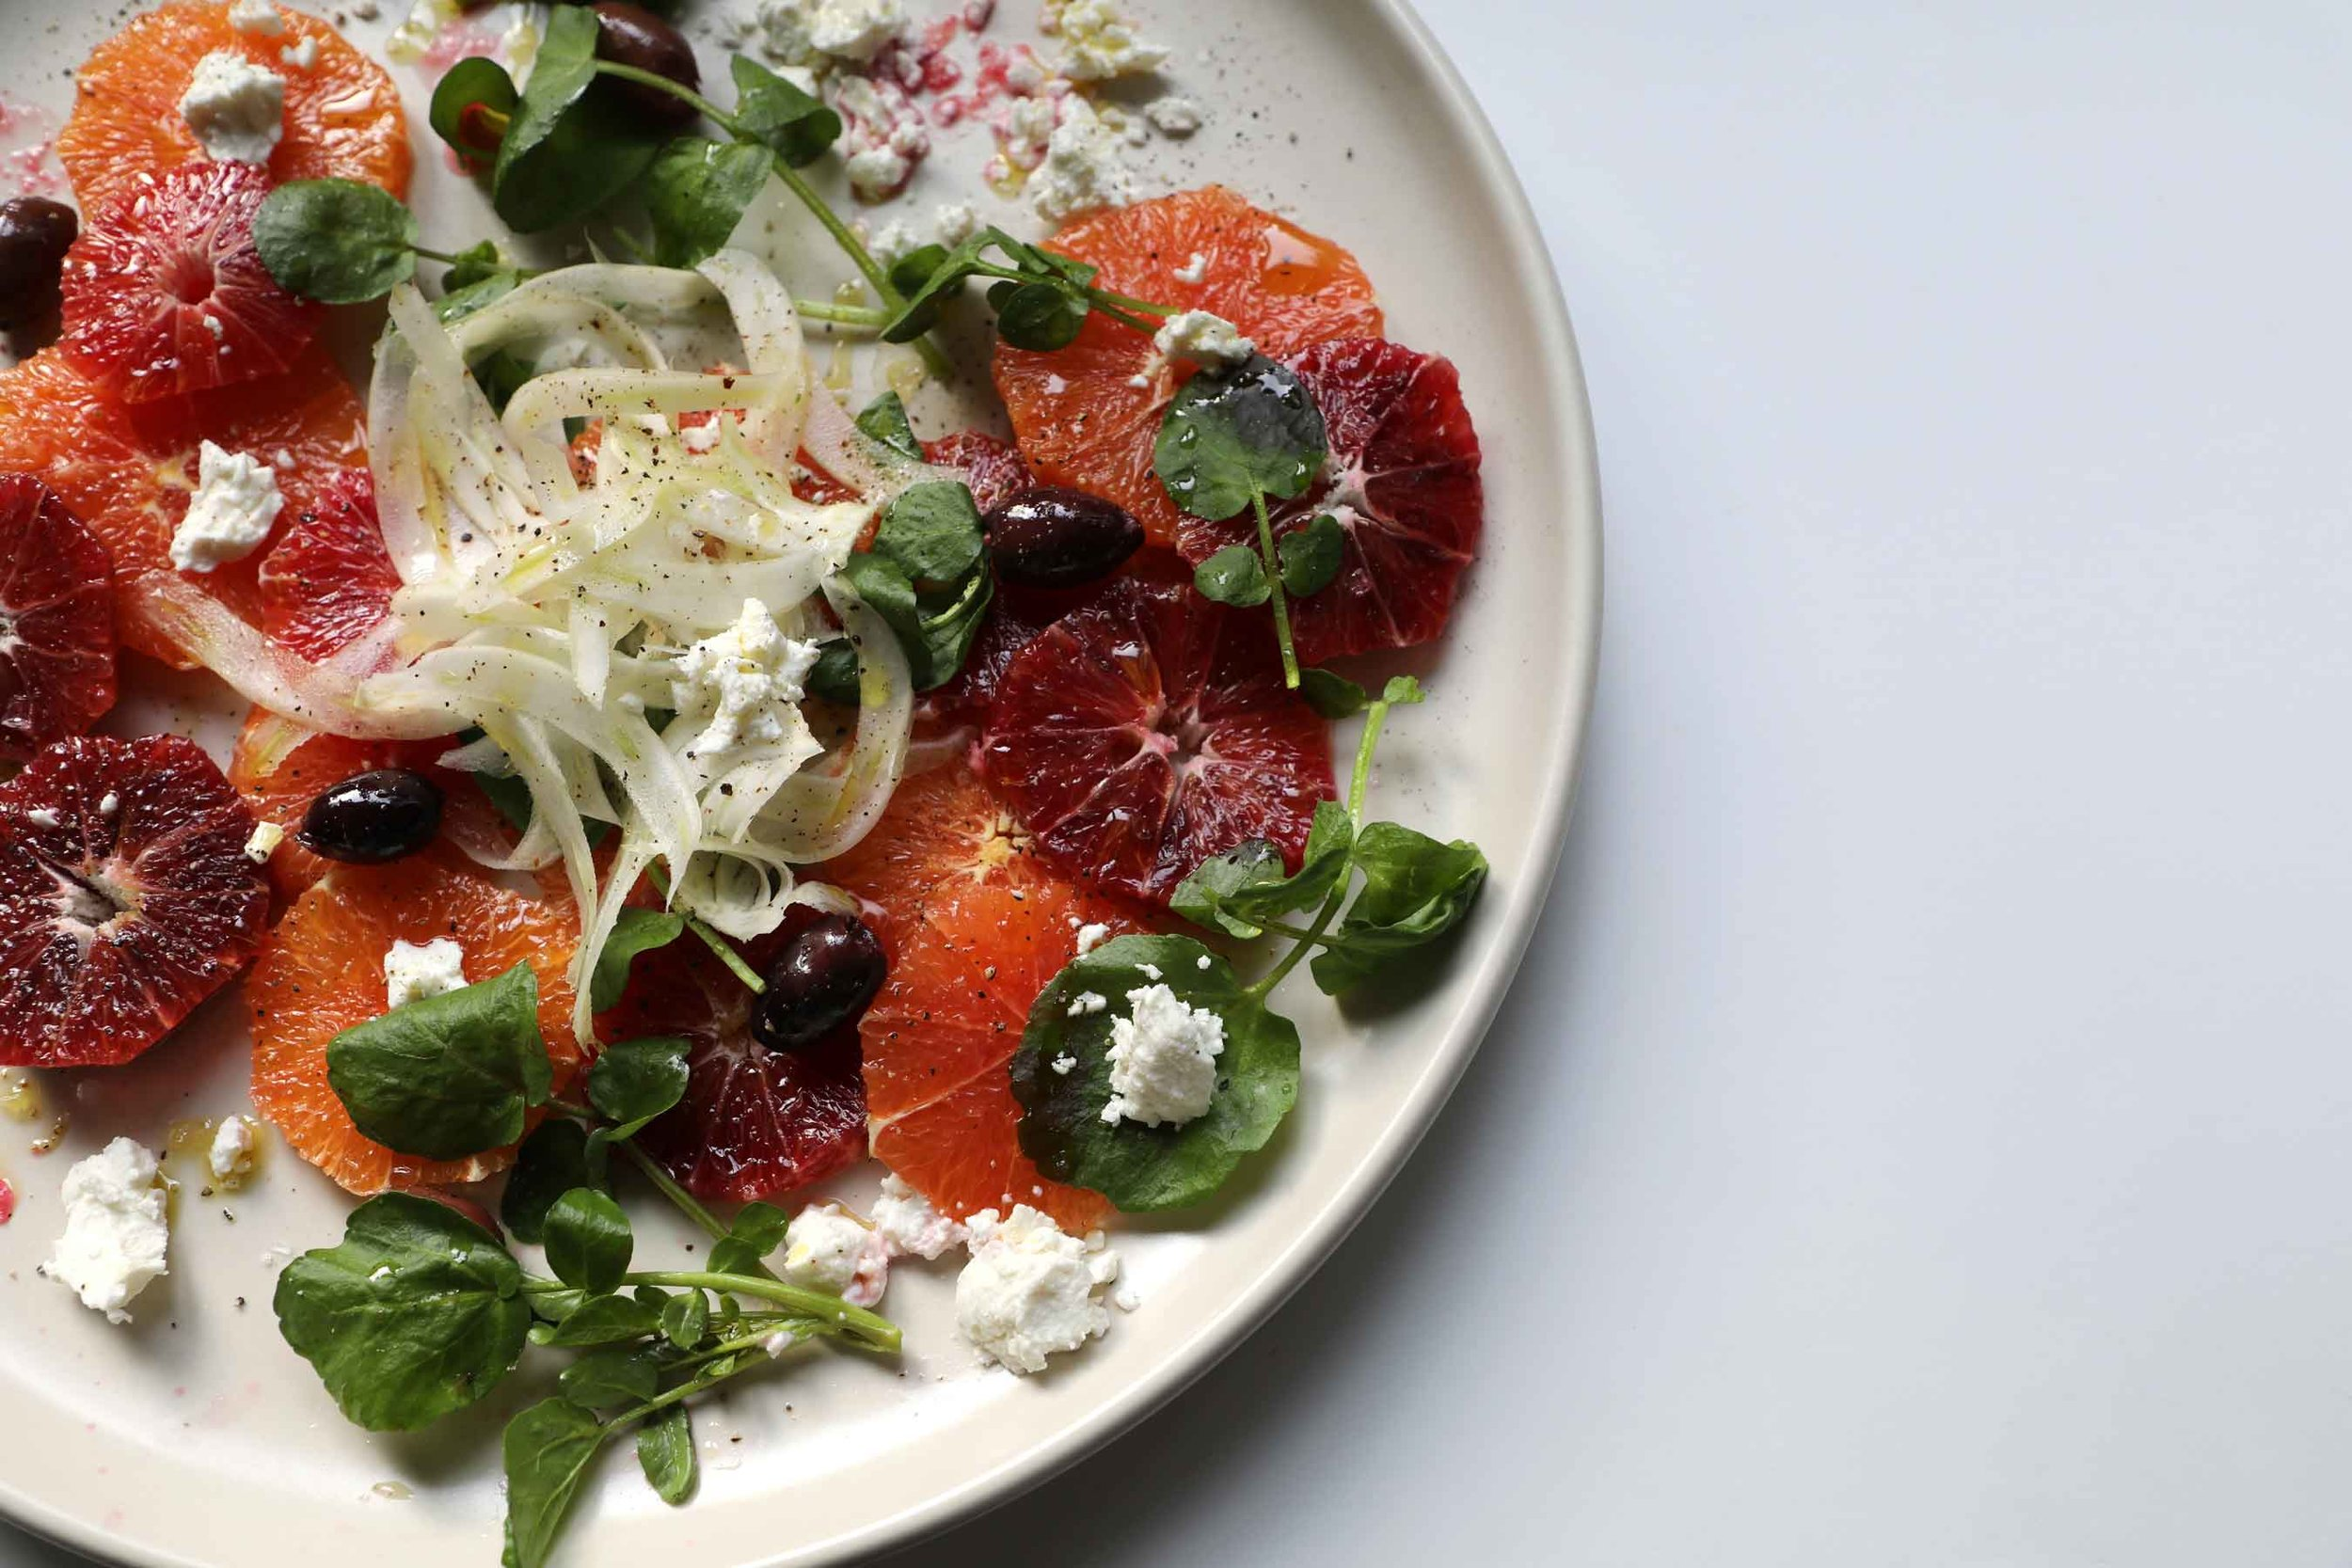 In the midst of winter, a vibrant citrus salad with fennel, kalamata olives, watercress, and goat cheese is a beautiful day brightener. Add this simple and elegant salad to your menu this week using Cara Cara and blood oranges, Ruby Red grapefruit, or whatever juicy citrus you can find at your market.